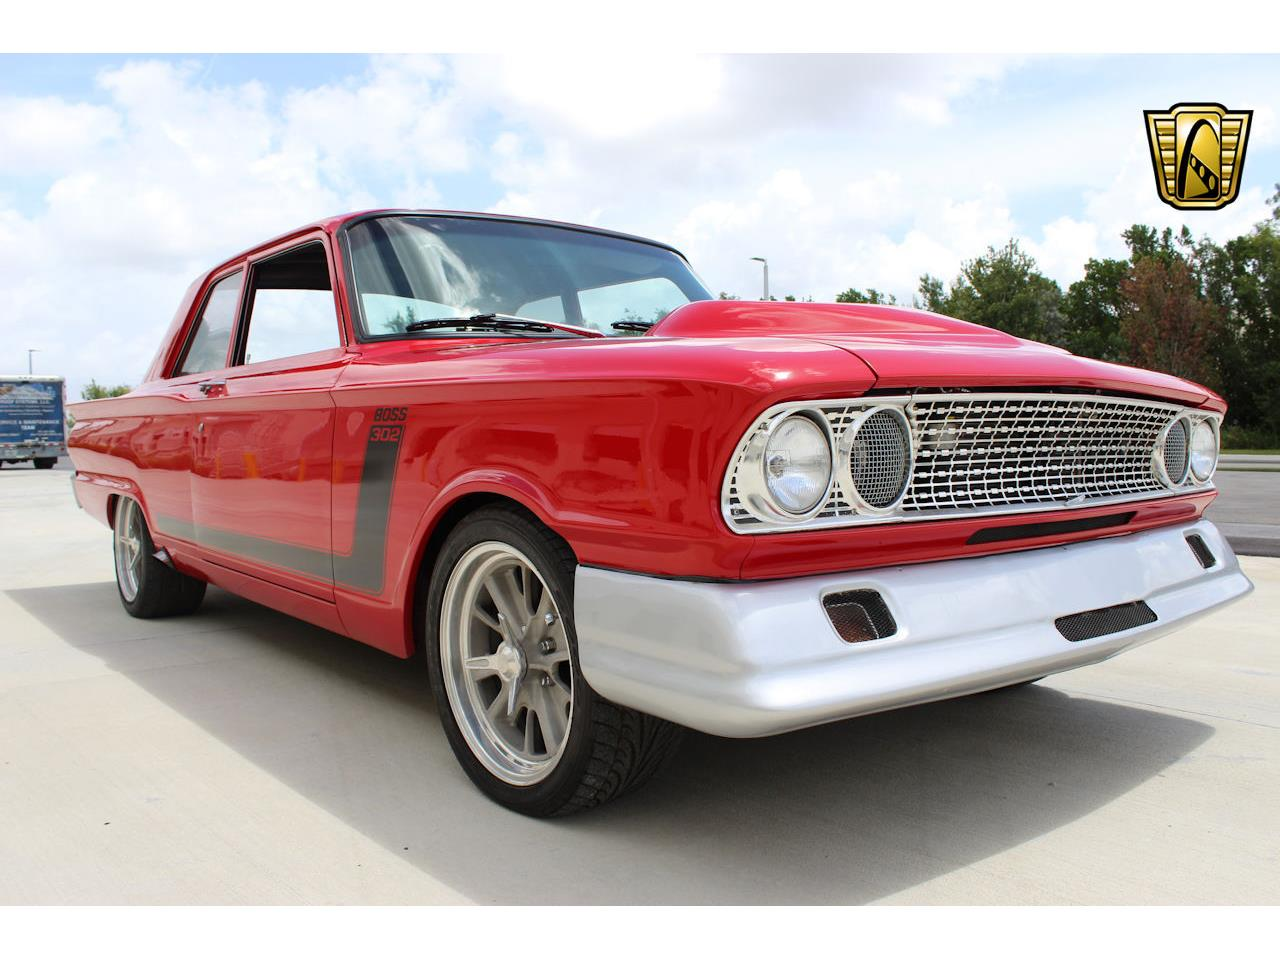 Large Picture of 1963 Ford Fairlane located in Coral Springs Florida - $27,595.00 - MSBB